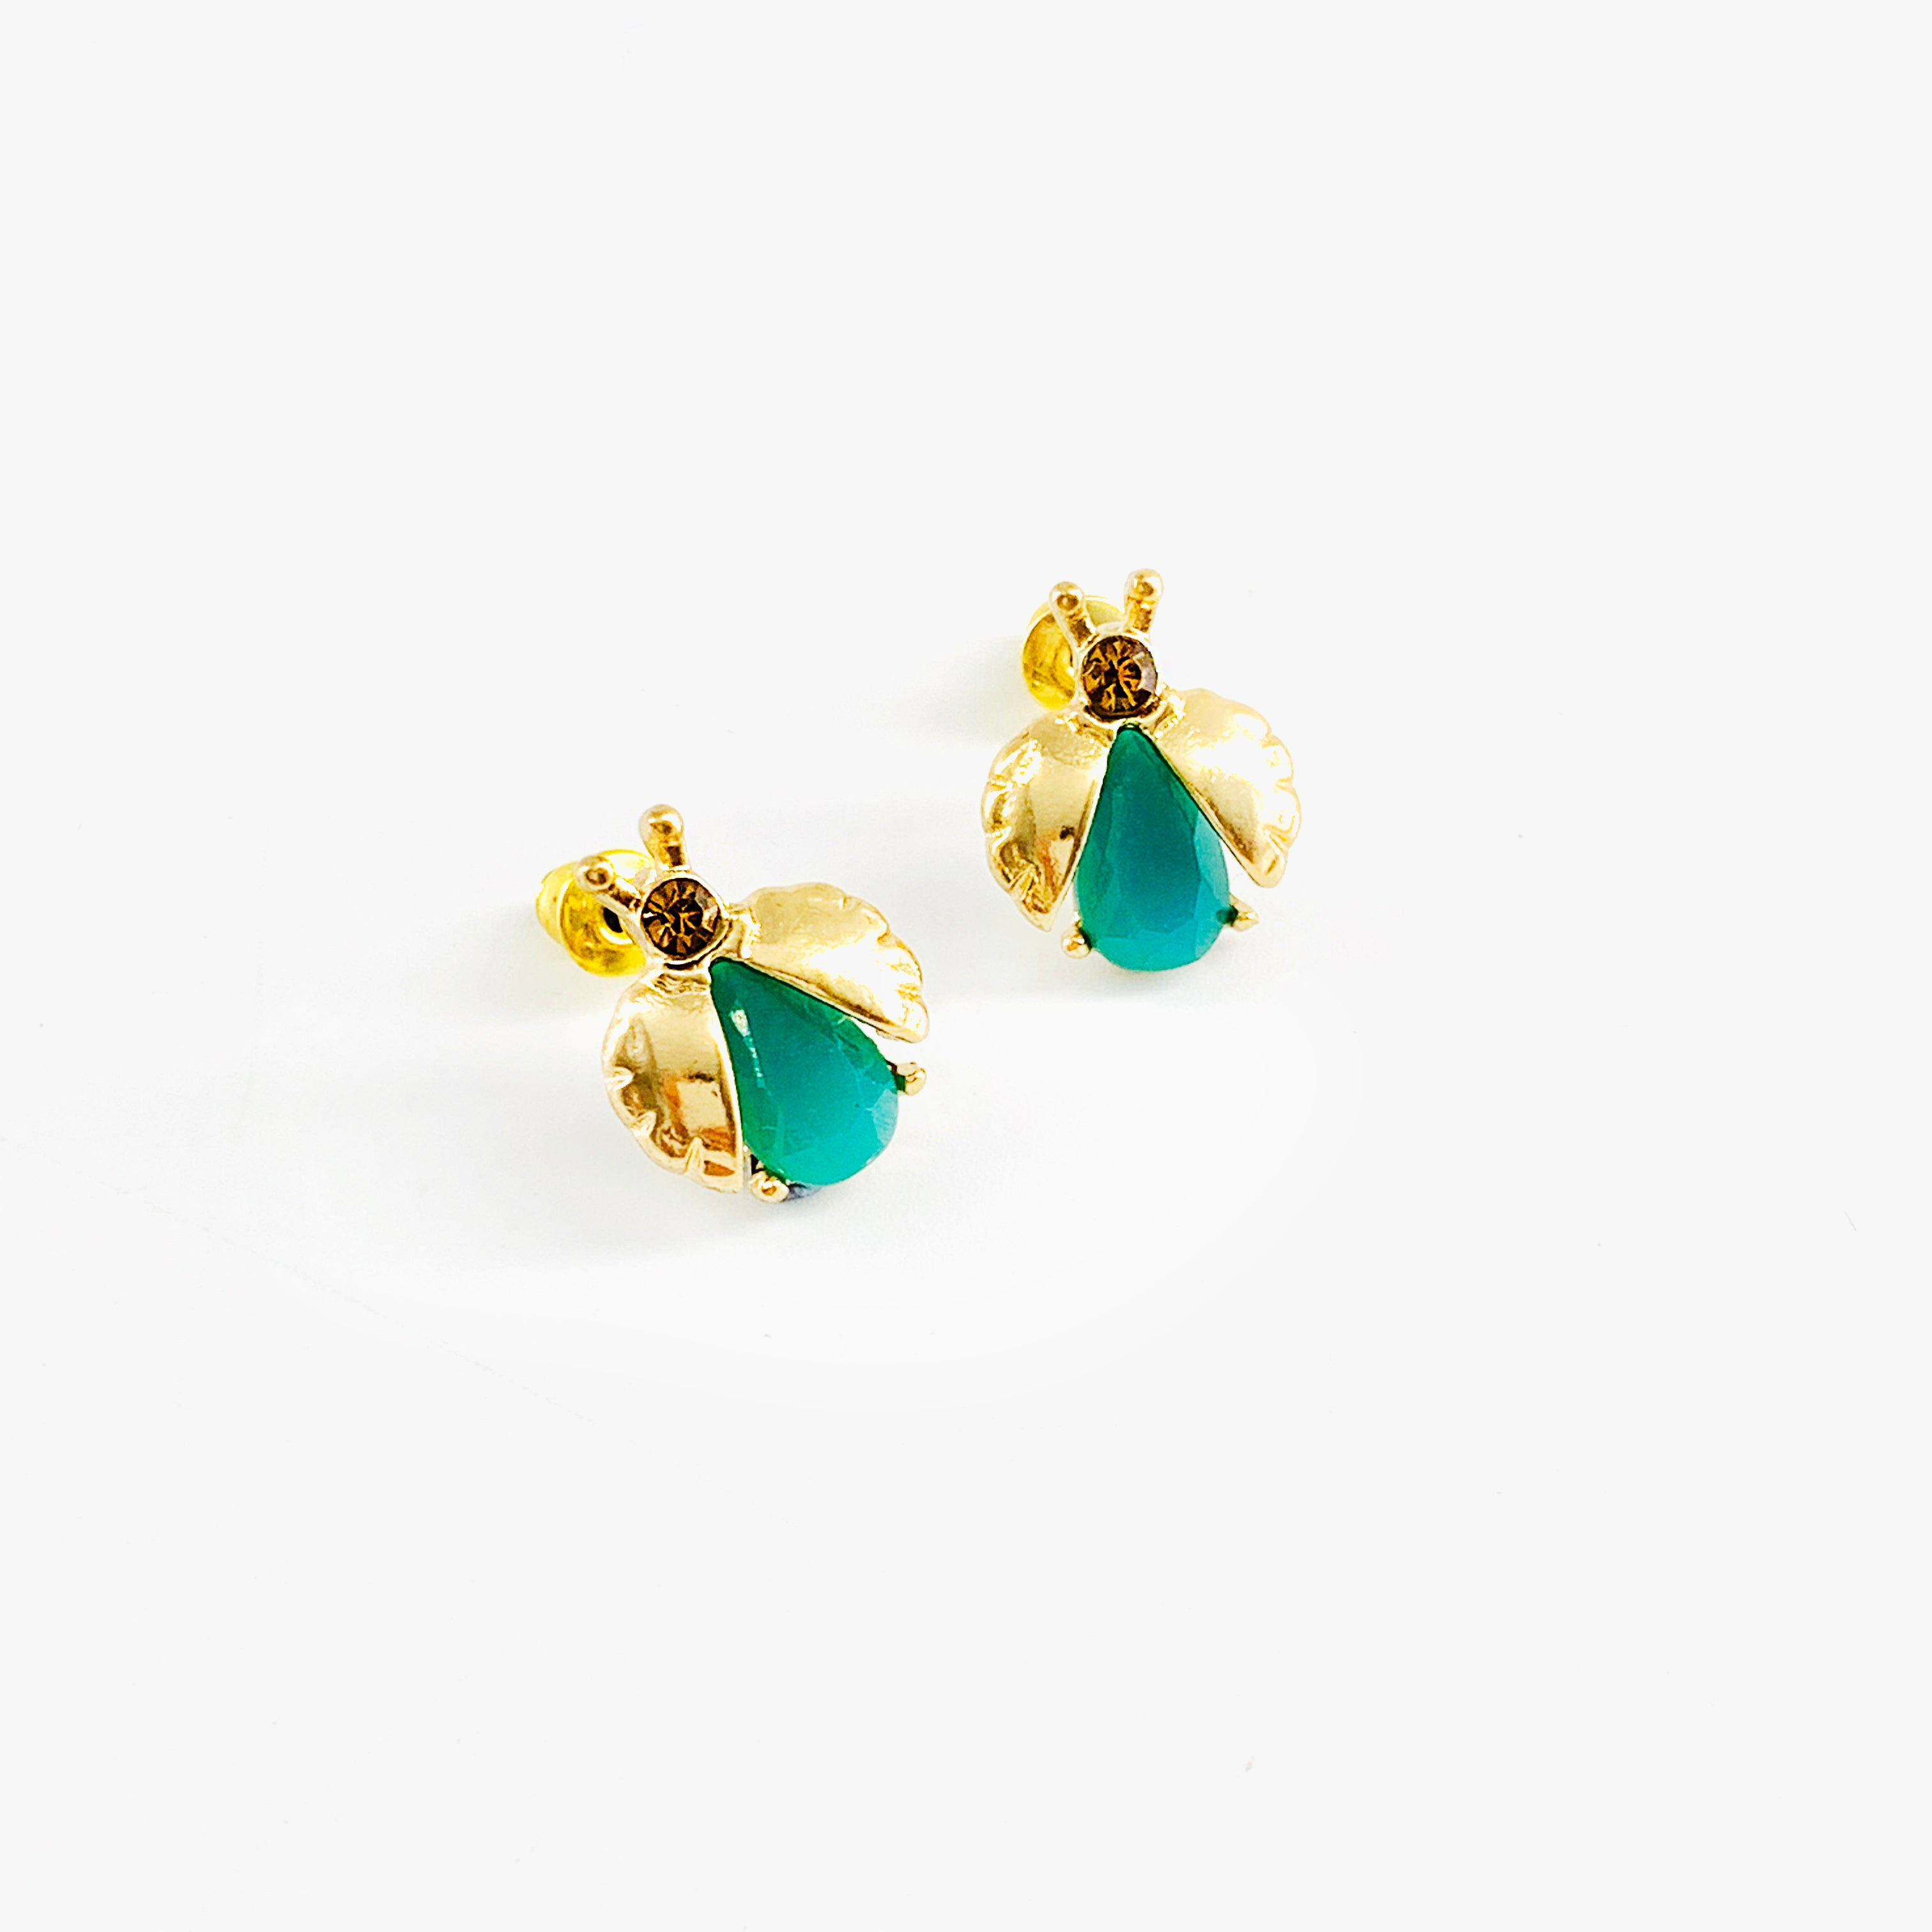 Gold beetle earrings with faceted green gems